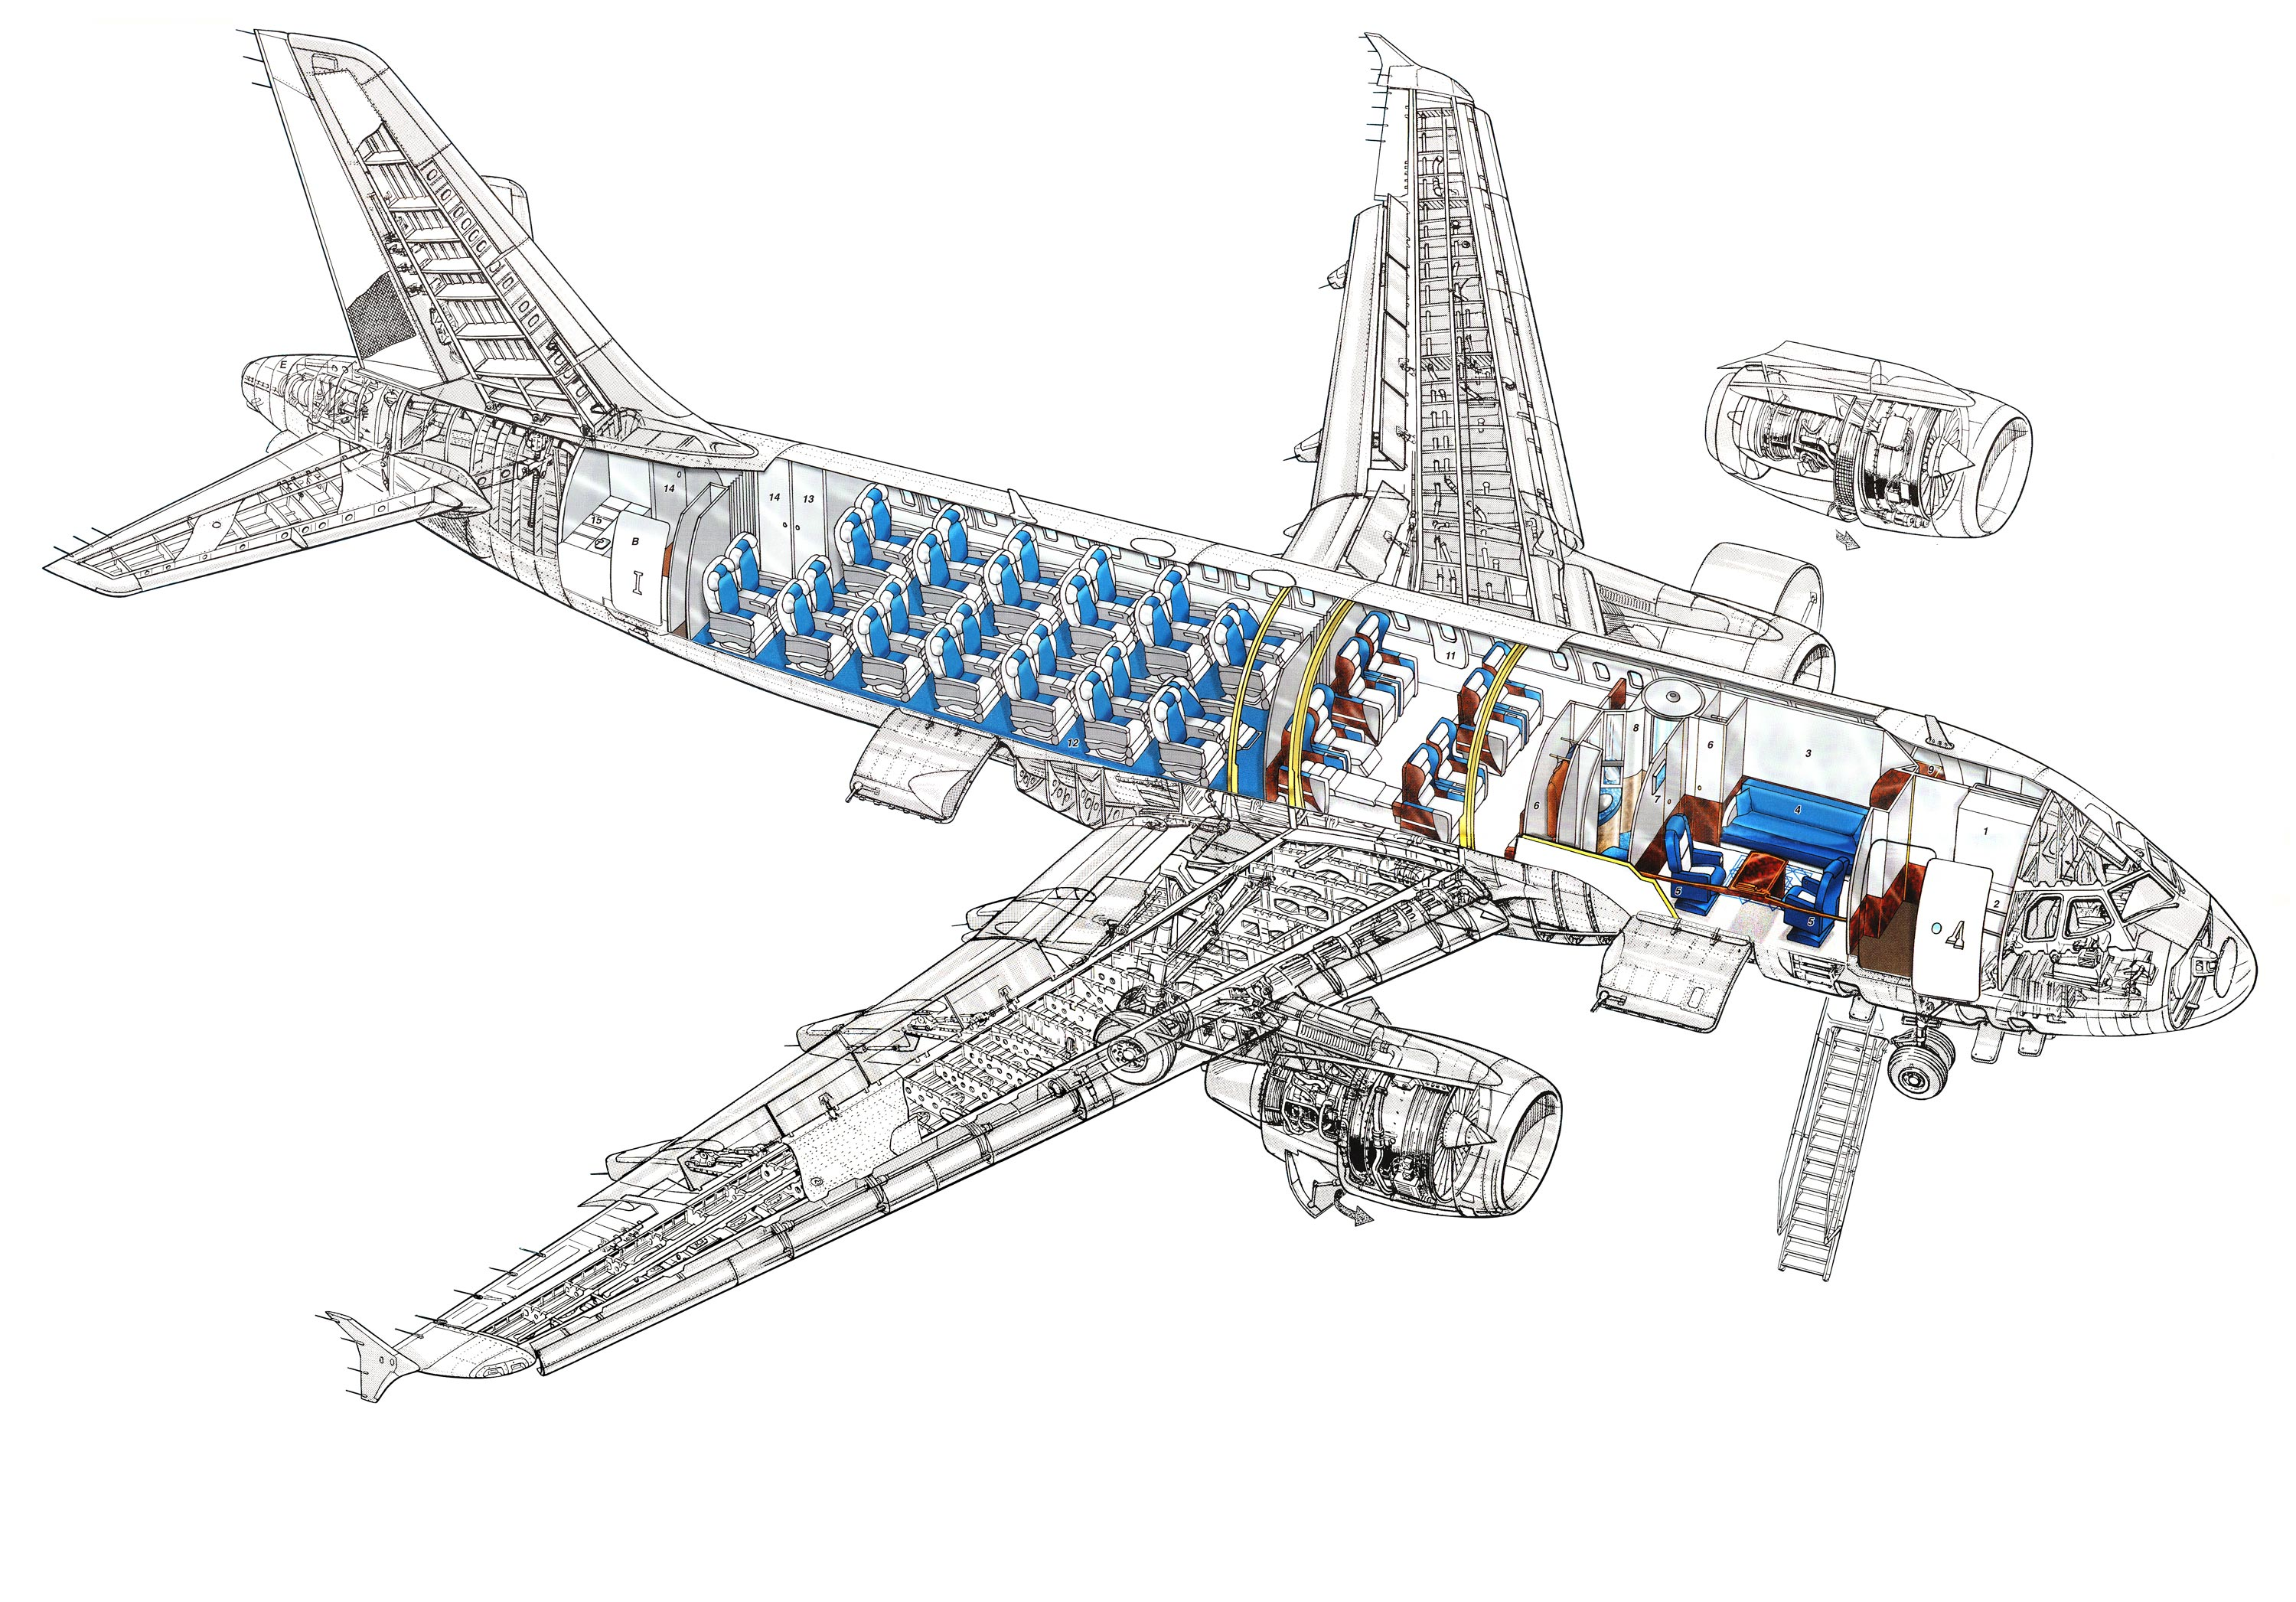 Airbus A319 Cutaway Drawing In High Quality